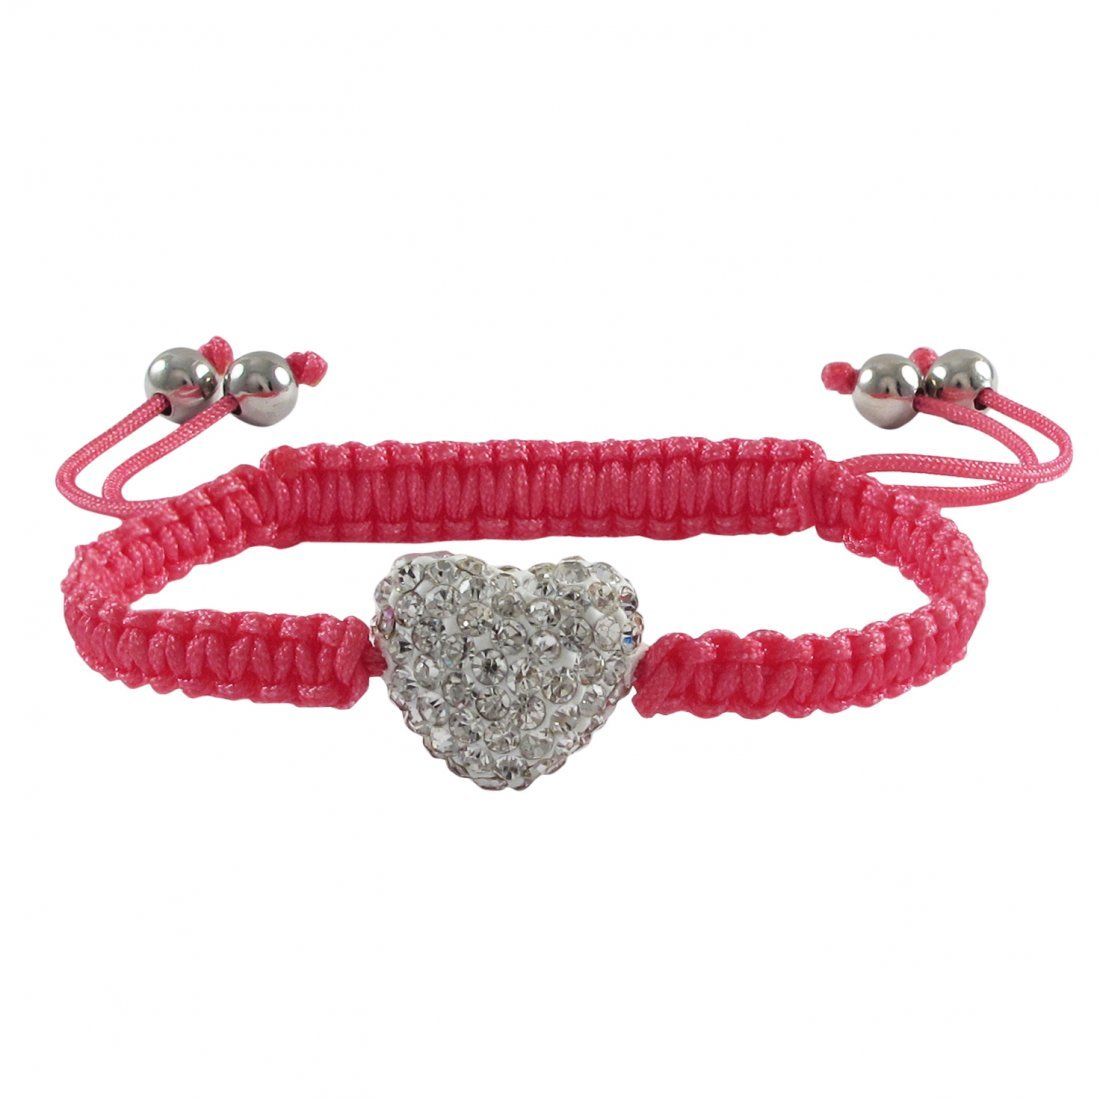 White 11x13mm Crystal Heart on Hot Pink Macrame Cord wi